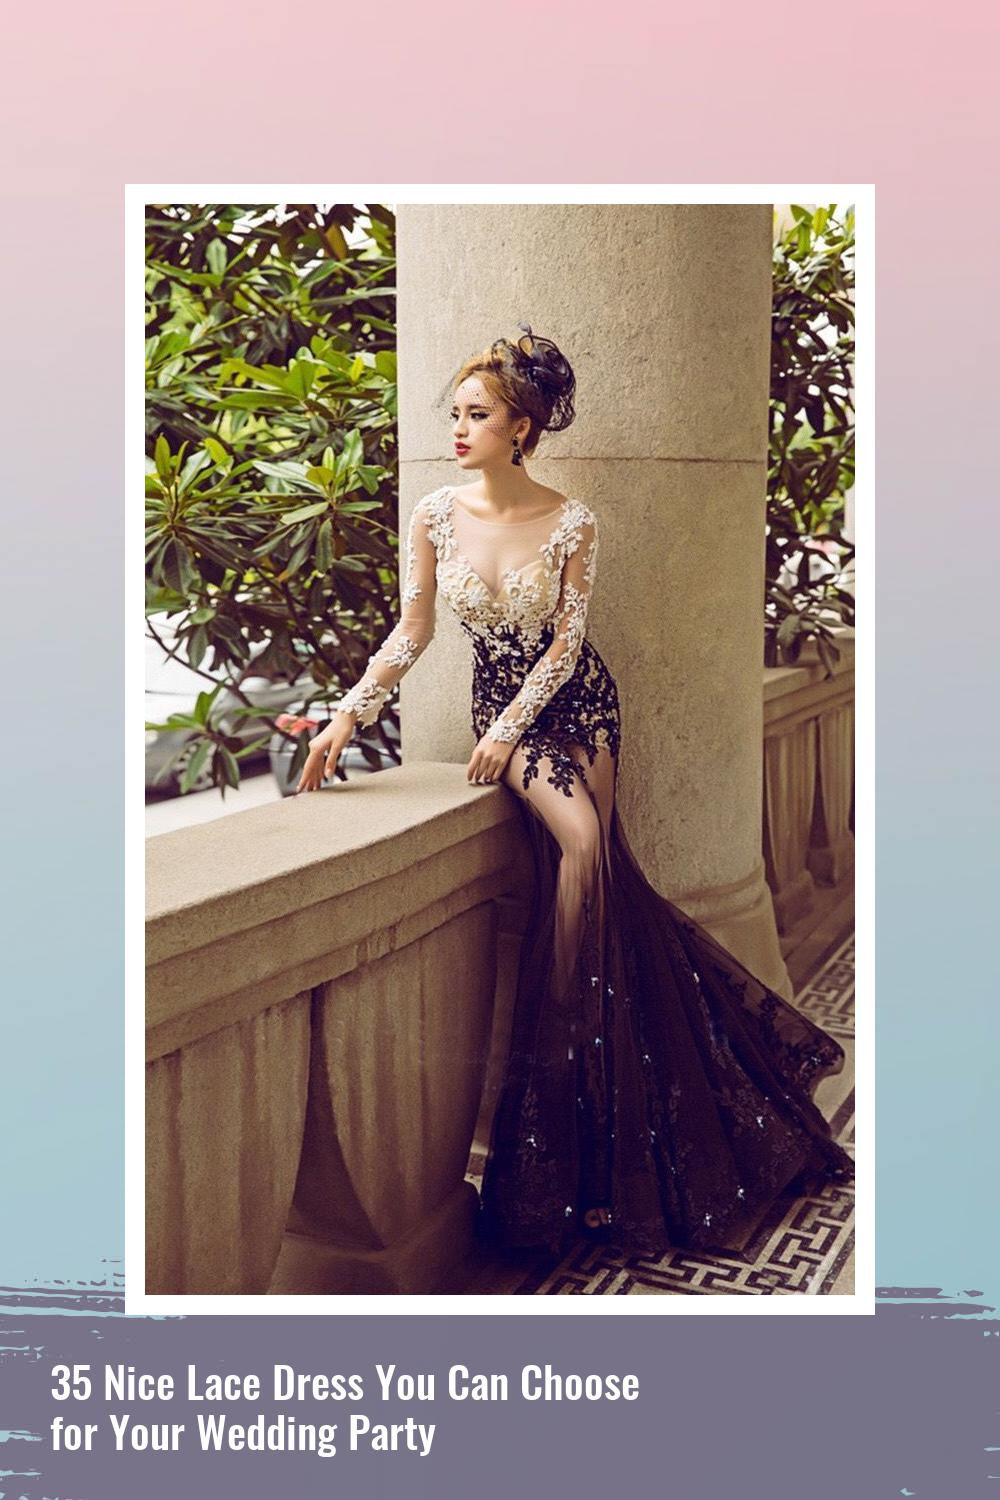 35 Nice Lace Dress You Can Choose for Your Wedding Party 31